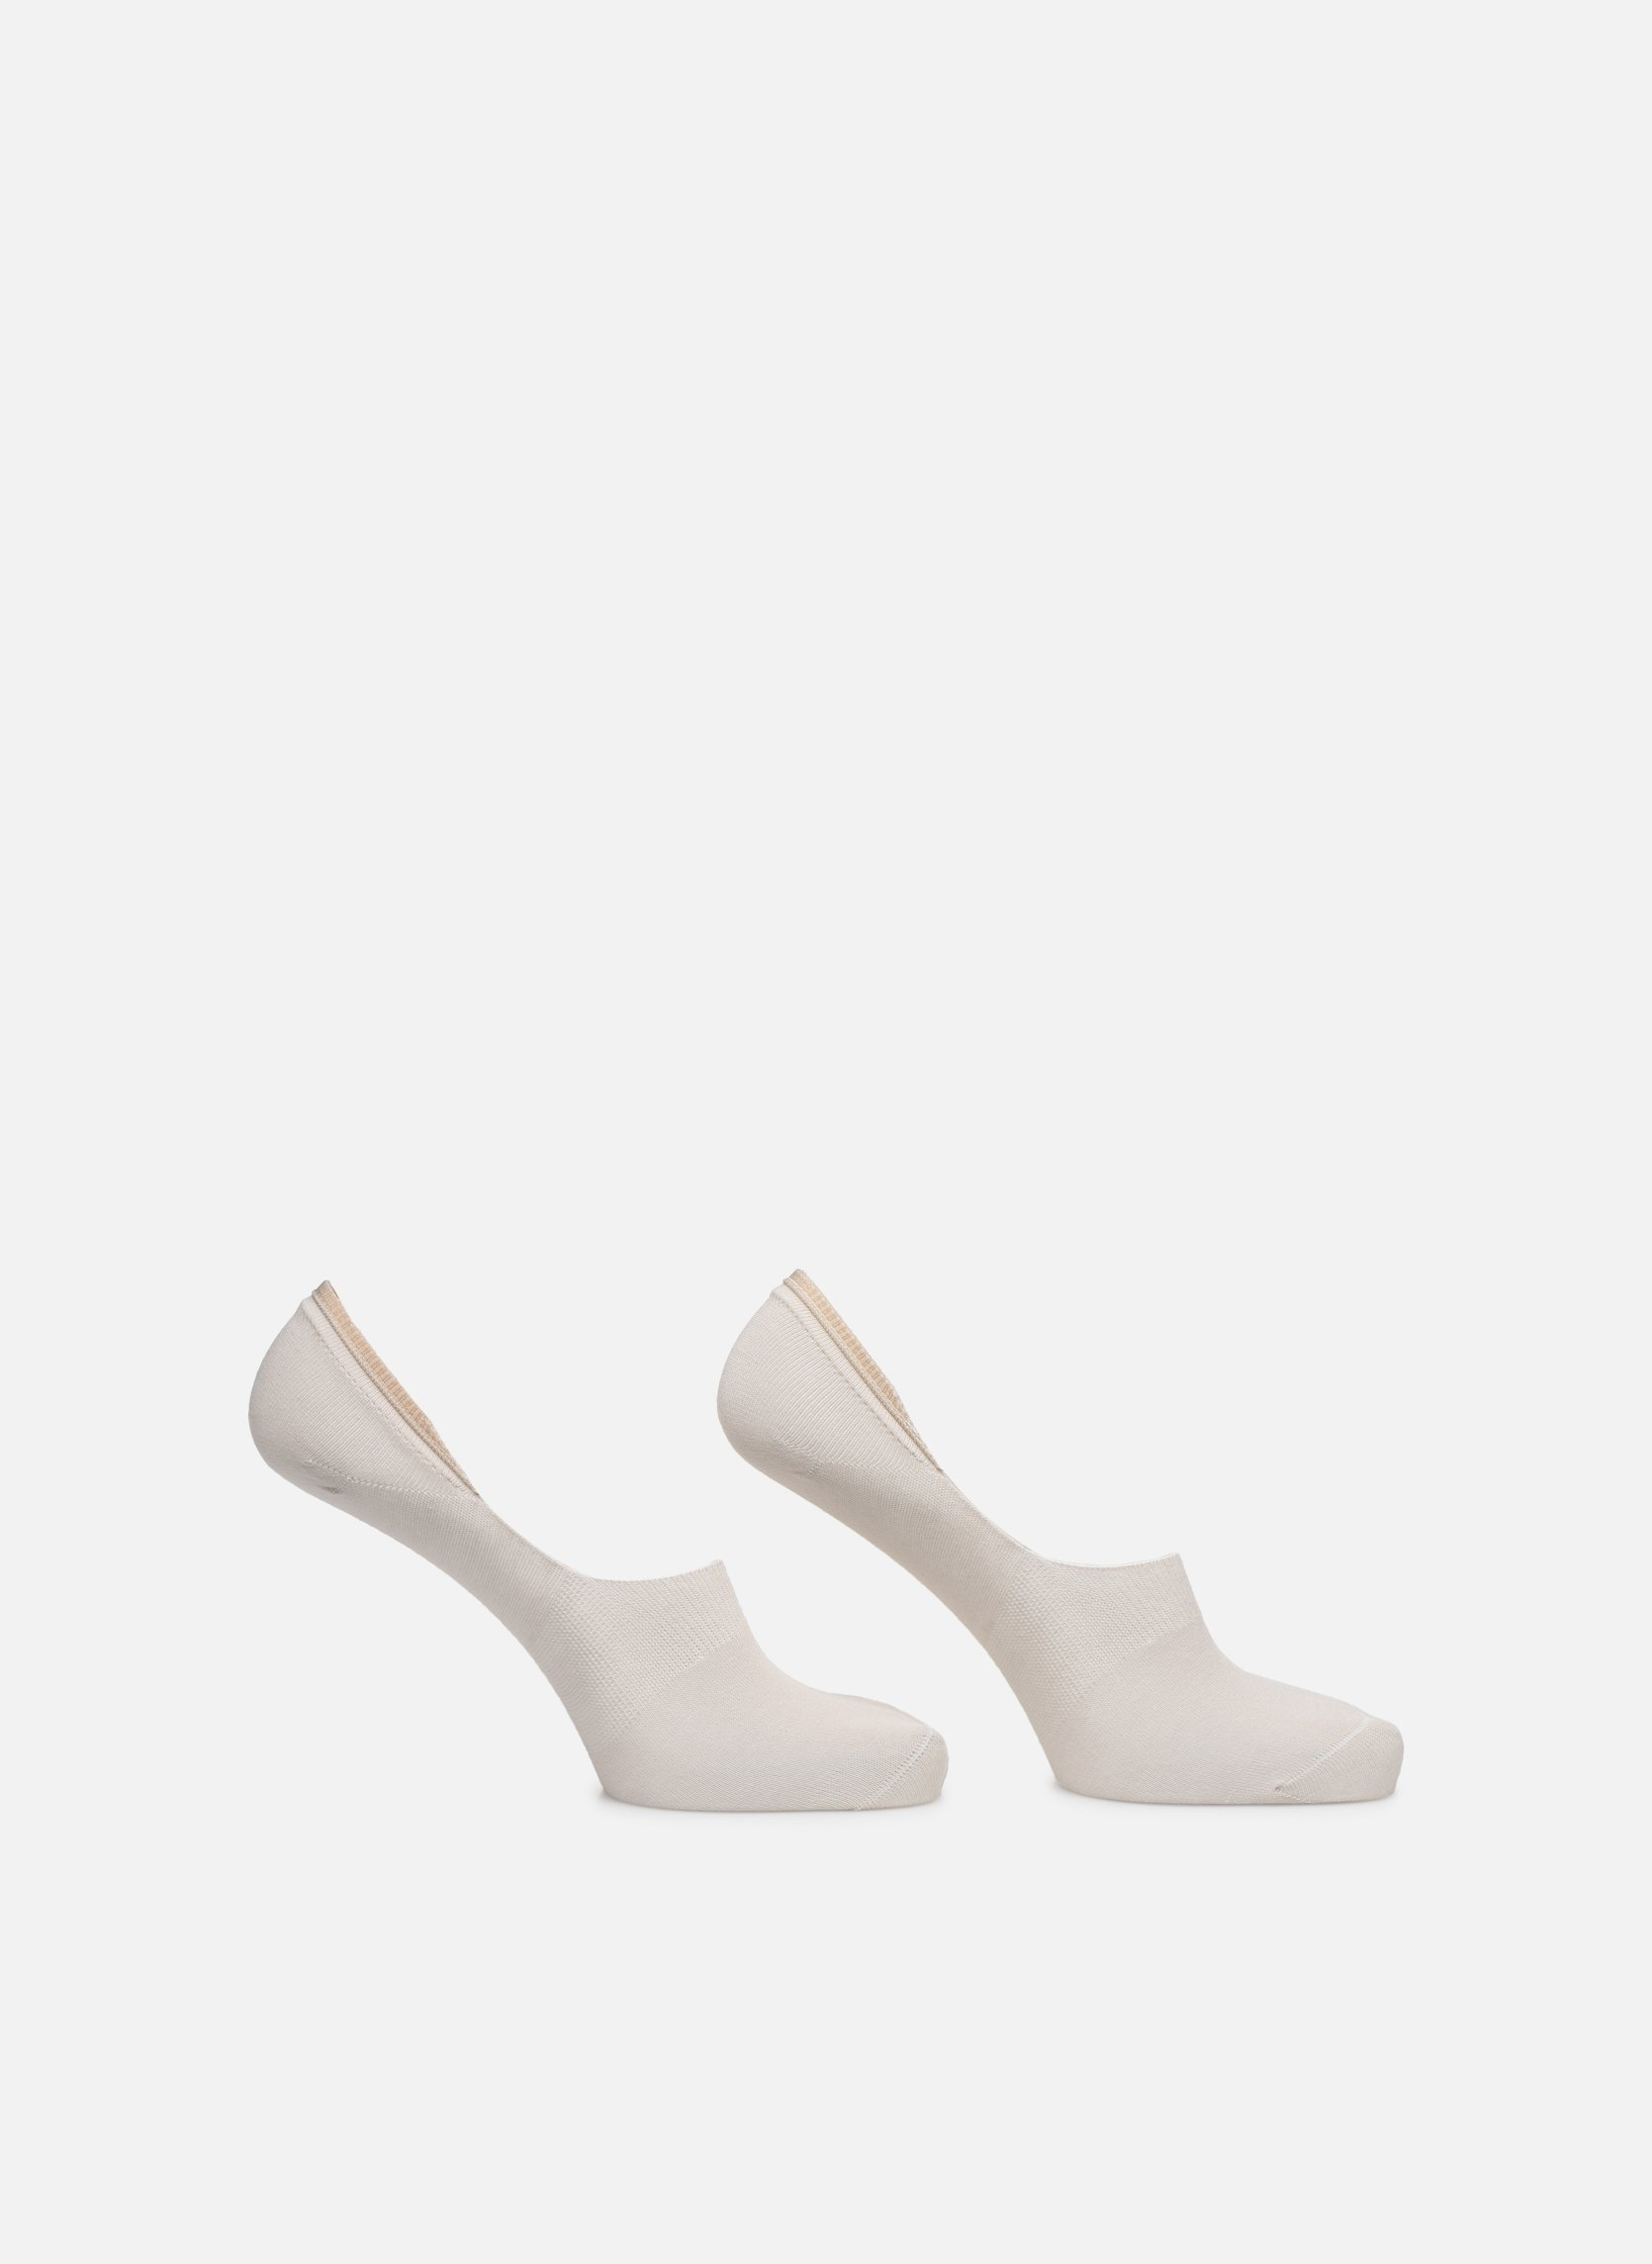 DUO PROTEGE-PIEDS COTON